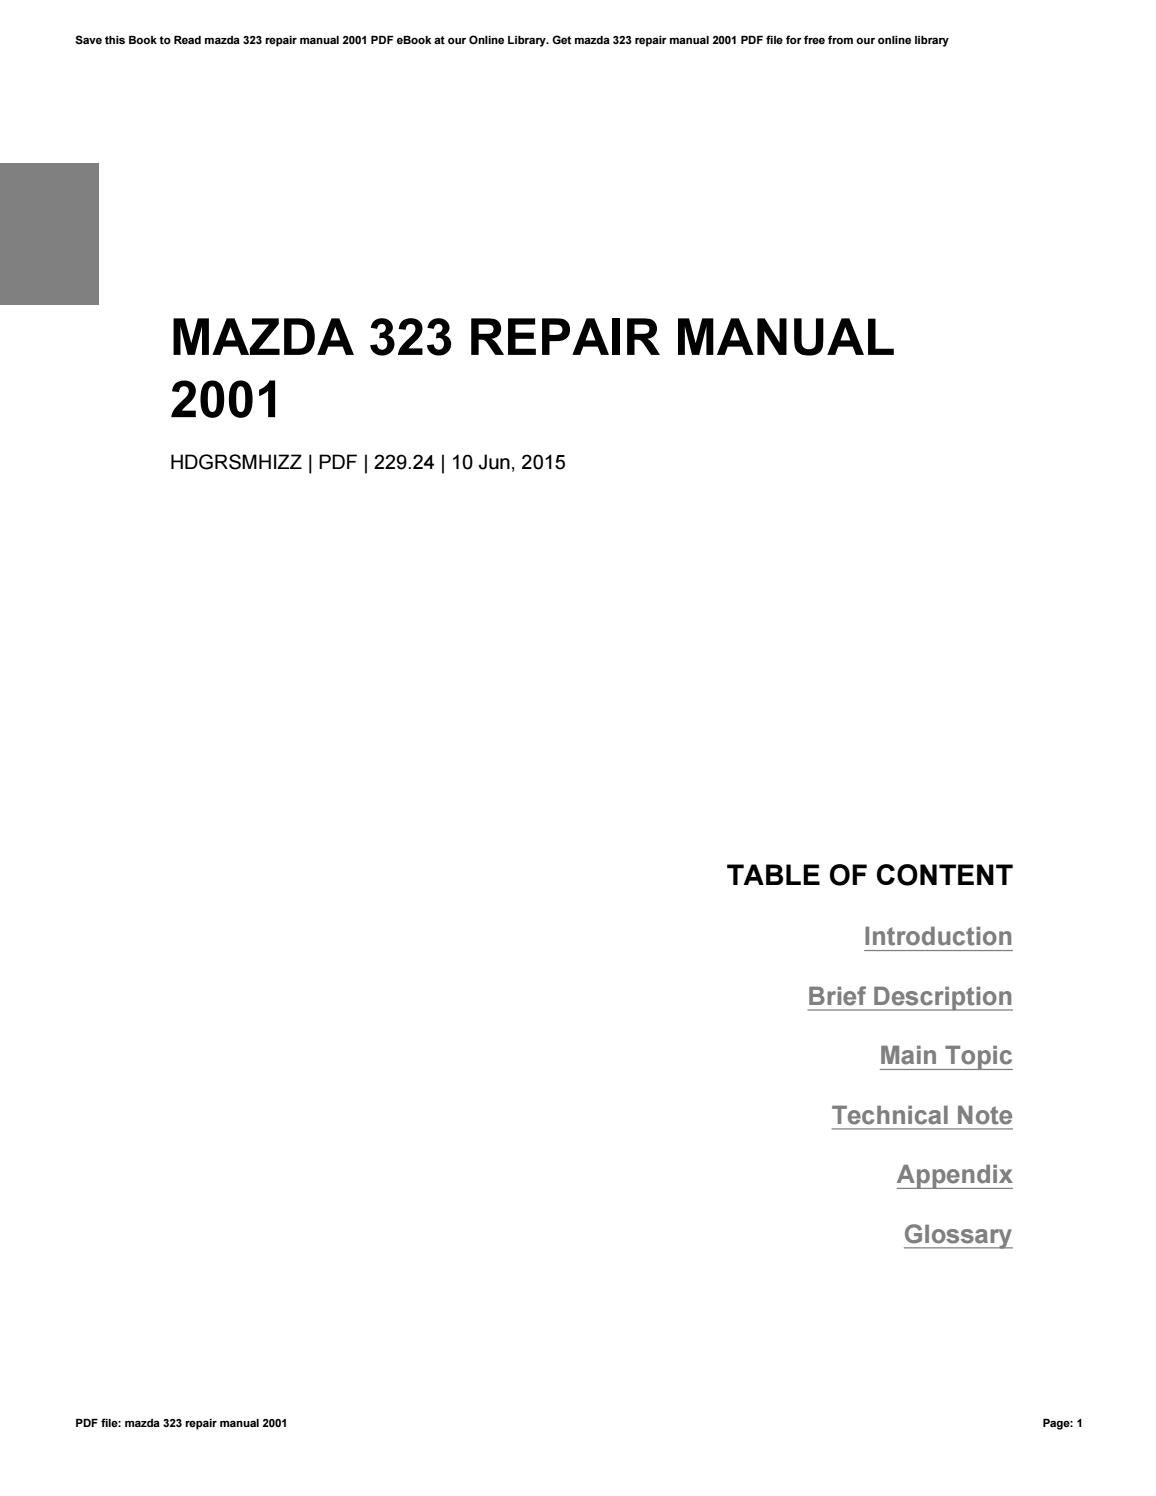 haynes workshop manual mazda premacy